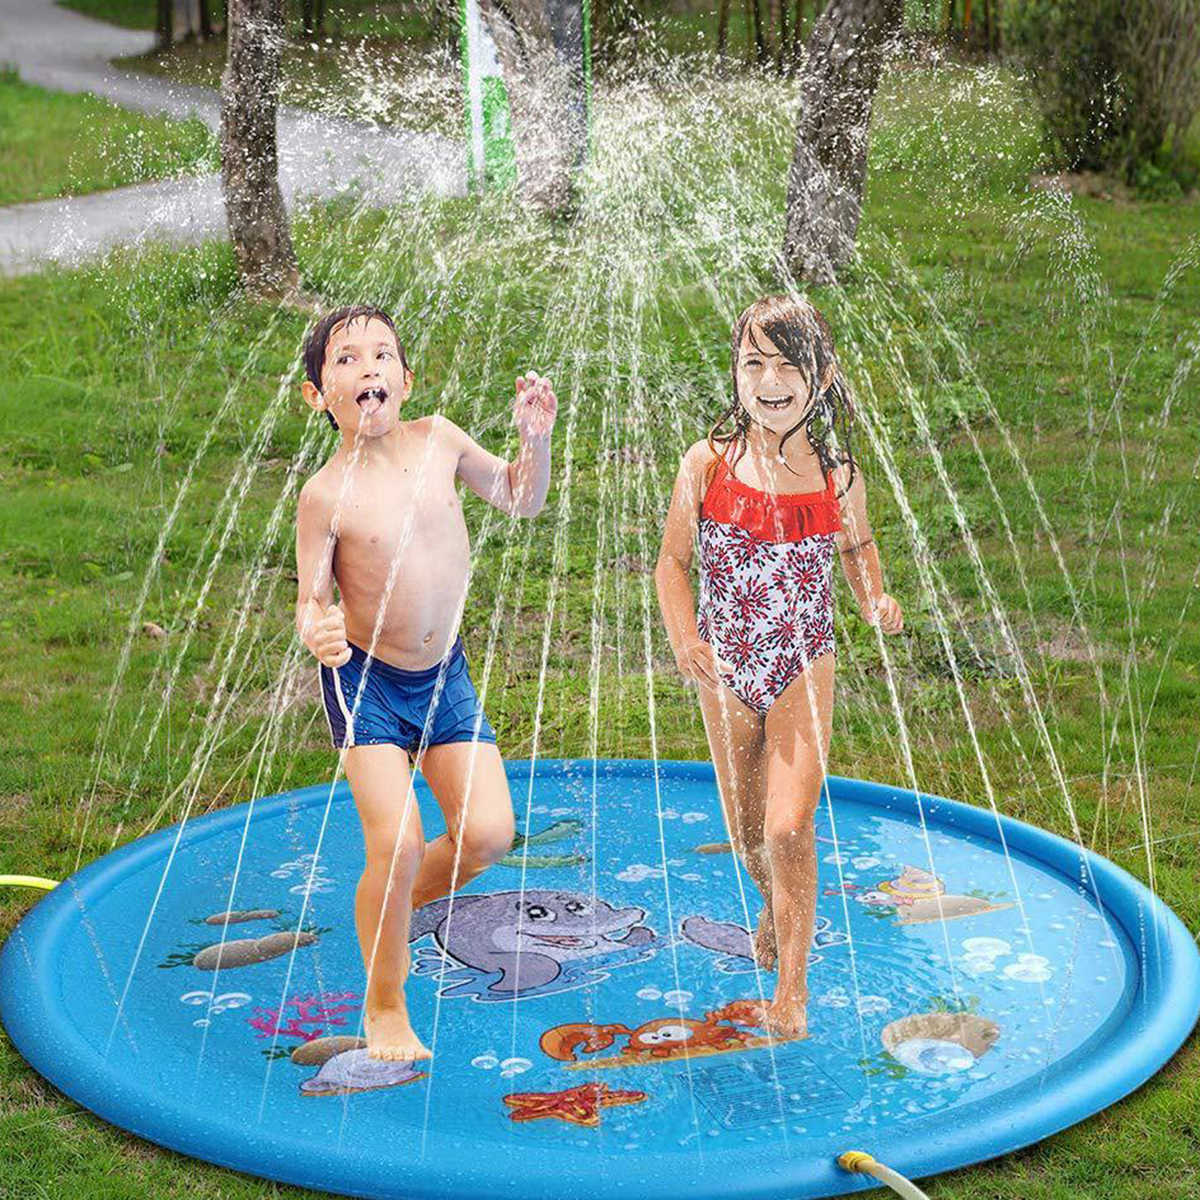 ZHNGHENG Color : Blue Couleur: Bleu 172cm Kid Gonflable Splash Jouer Piscine Fun Jouer Arroseur Tapis de Jardin ext/érieur /ét/é PVC Mini Ronde Vaporiser Piscine